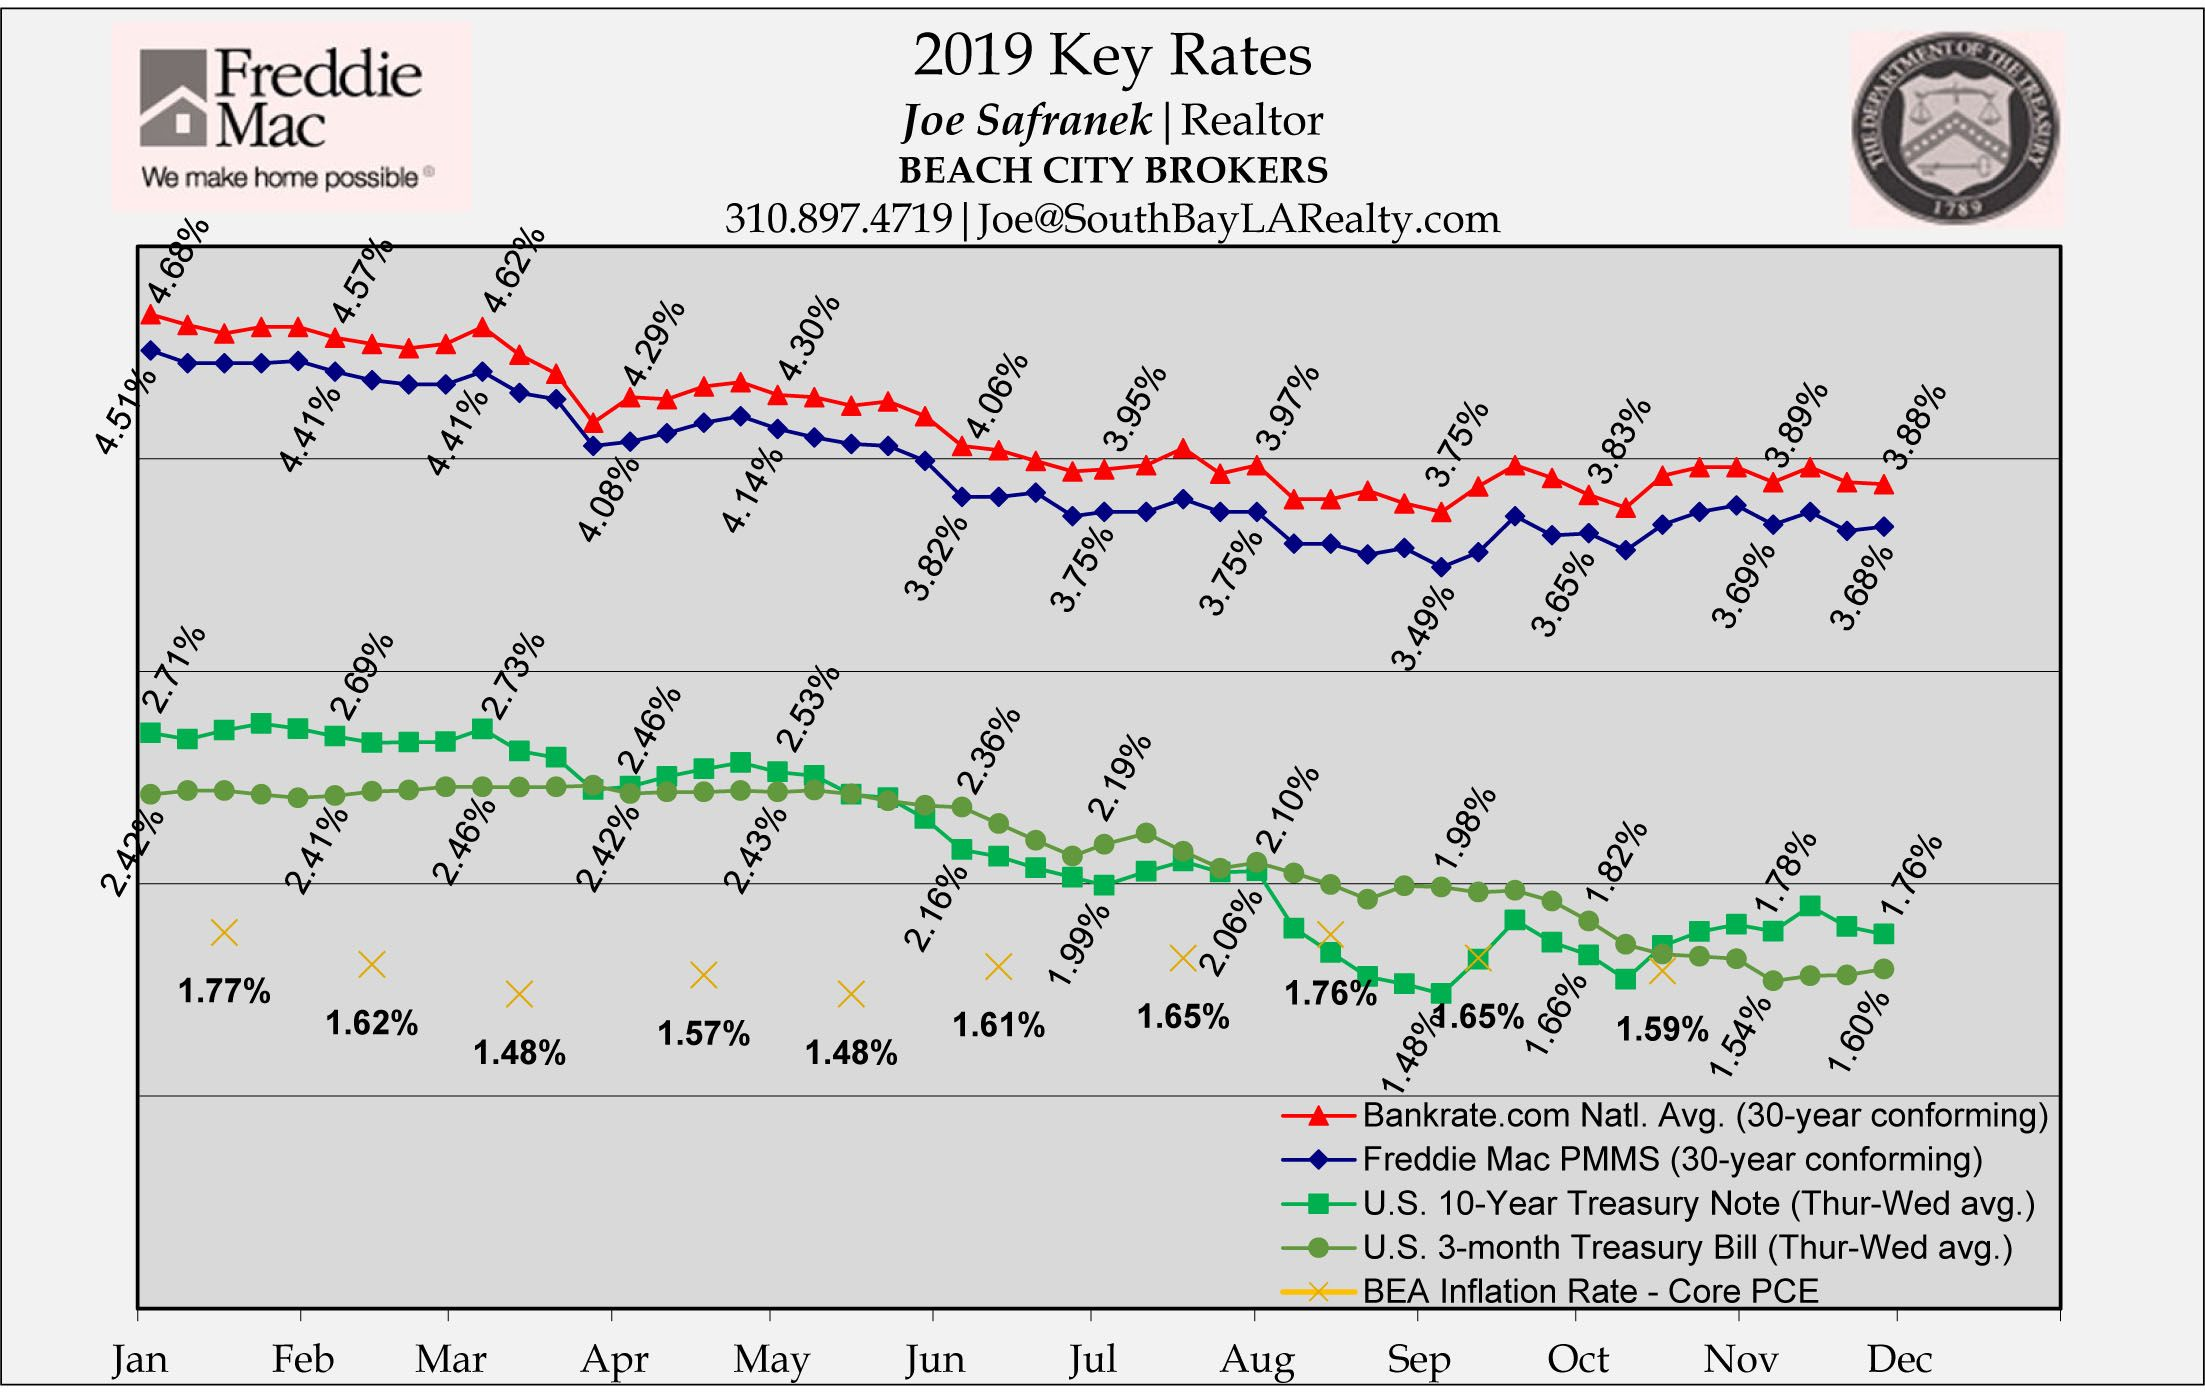 Flat Rates For The Shortened Week And Subdued Inflationary